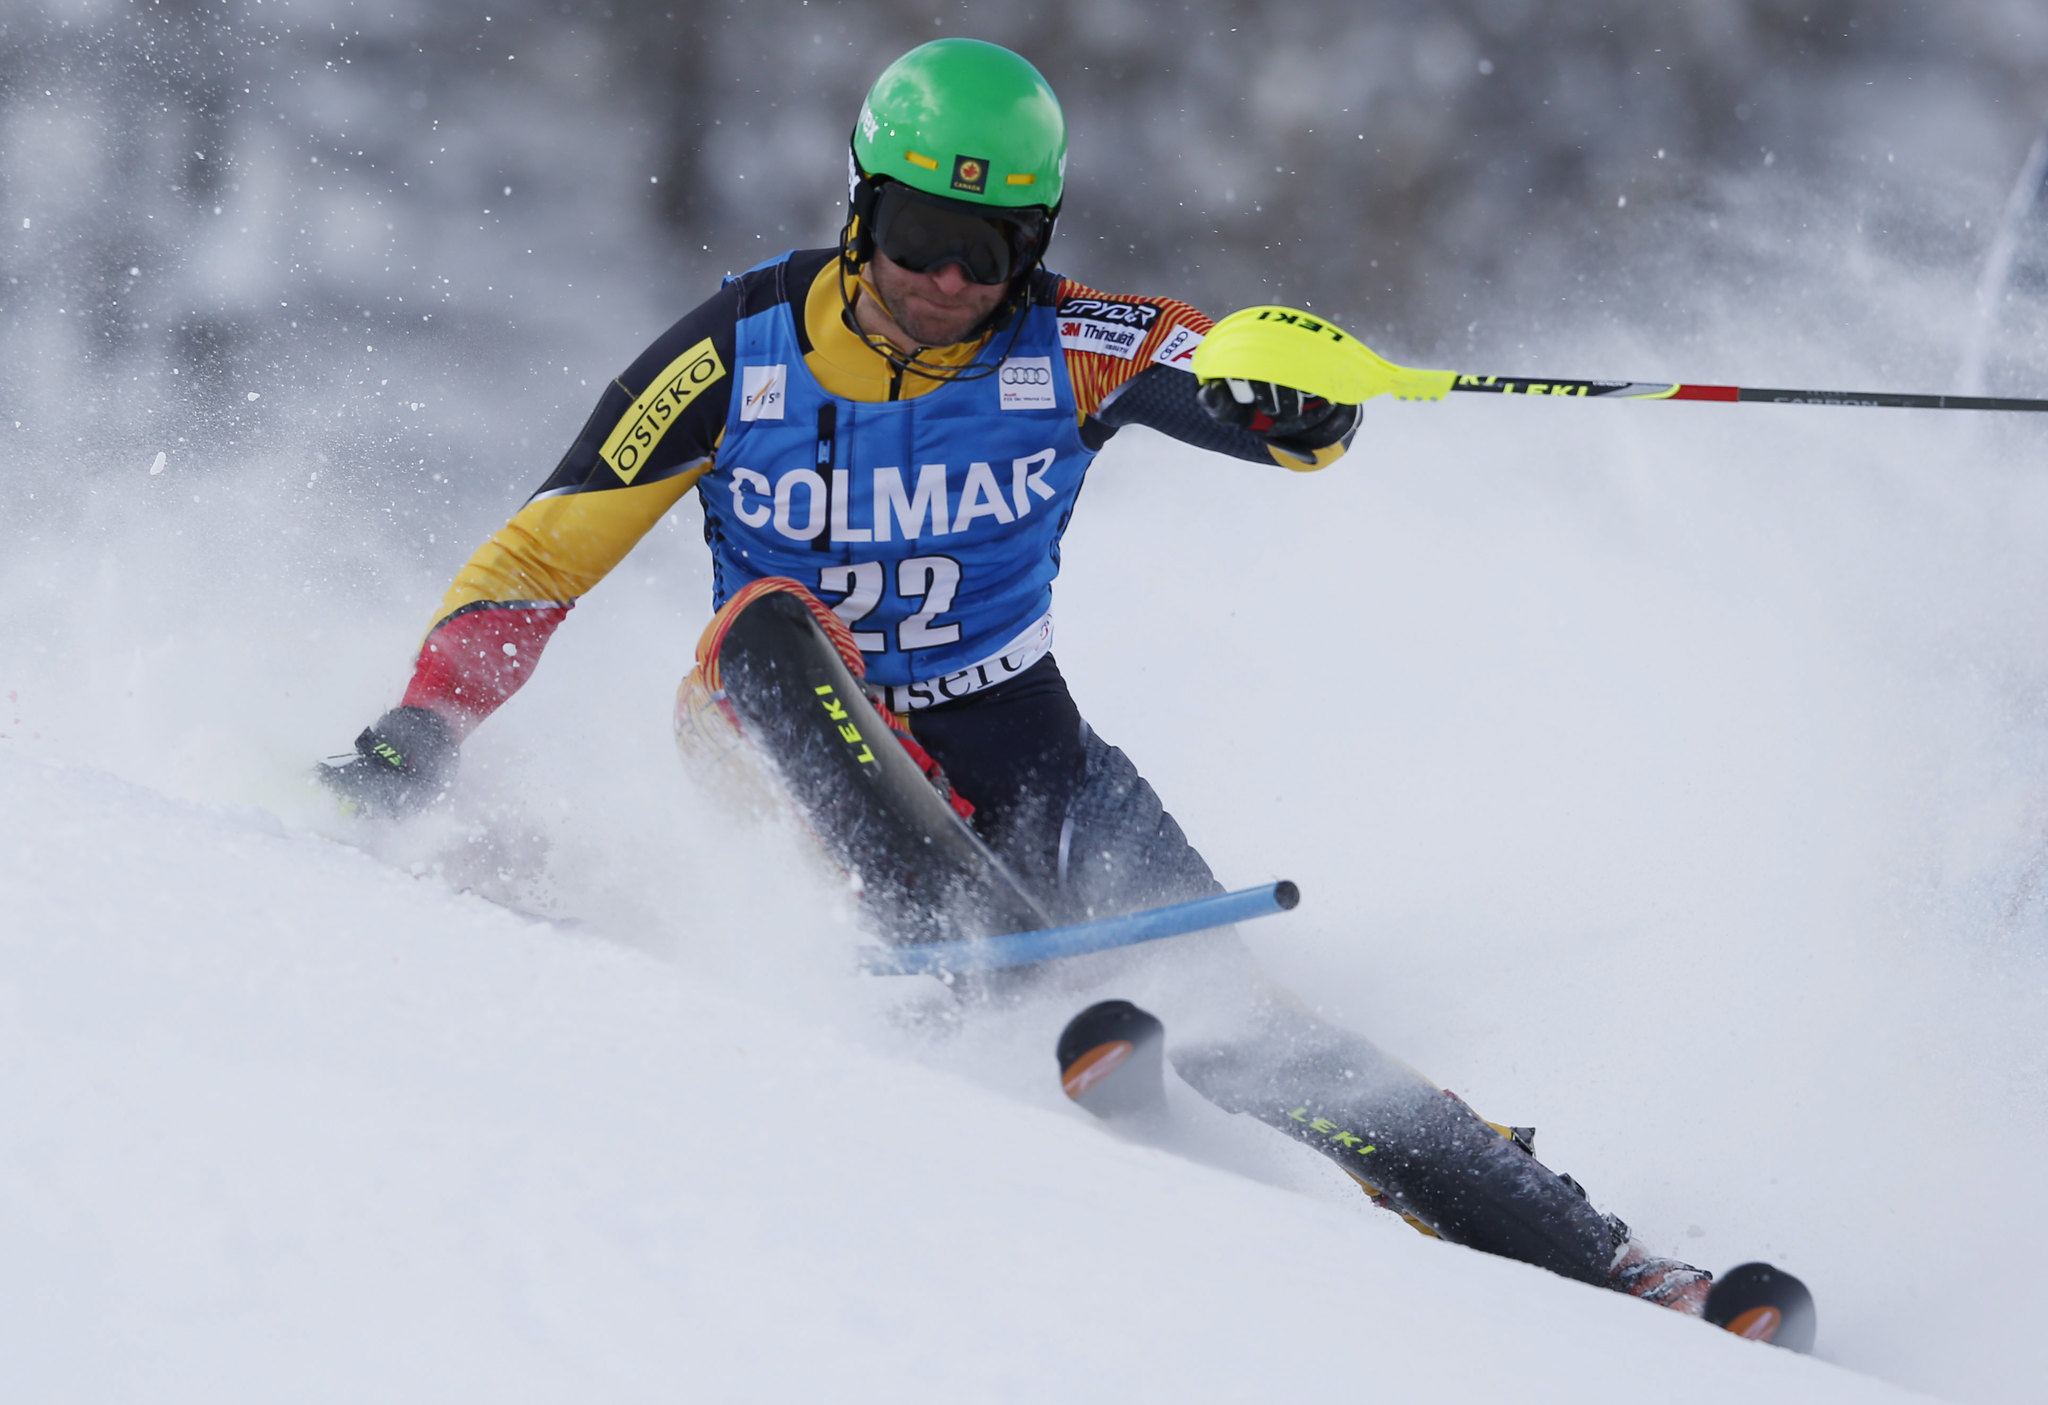 Mike Janyk races slalom in Val d'Isère, France.